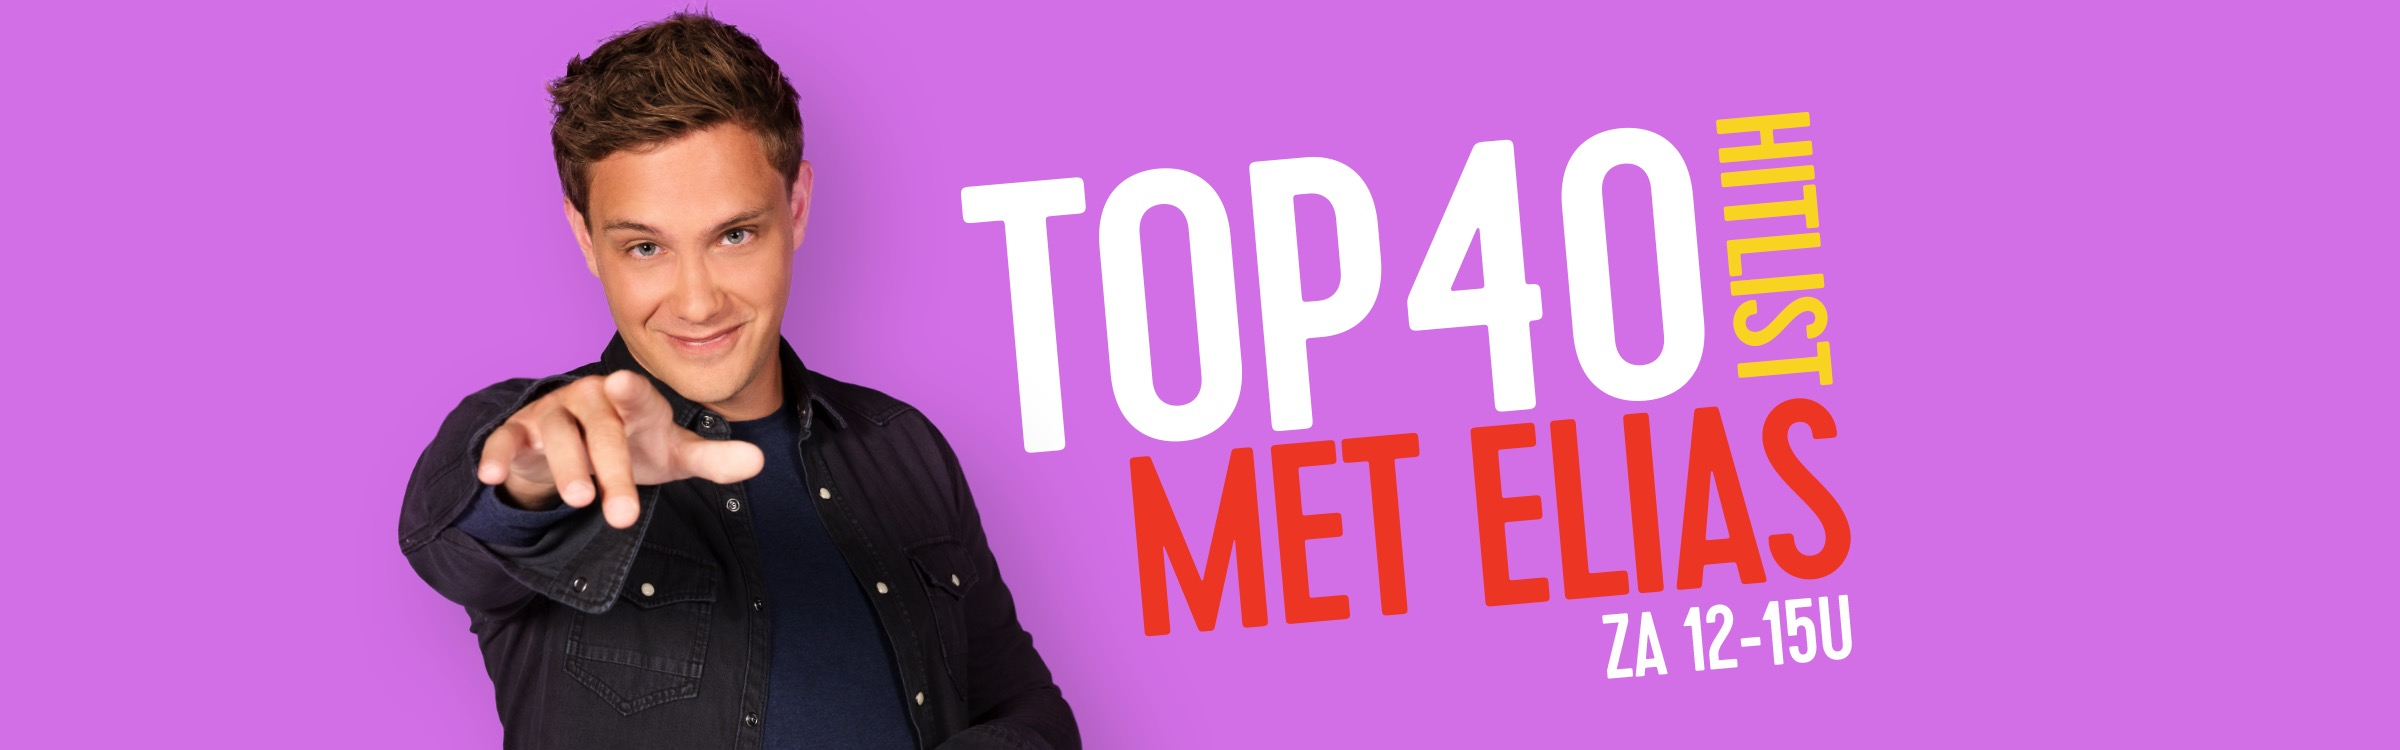 Q 2400x750 top40hitlist elias